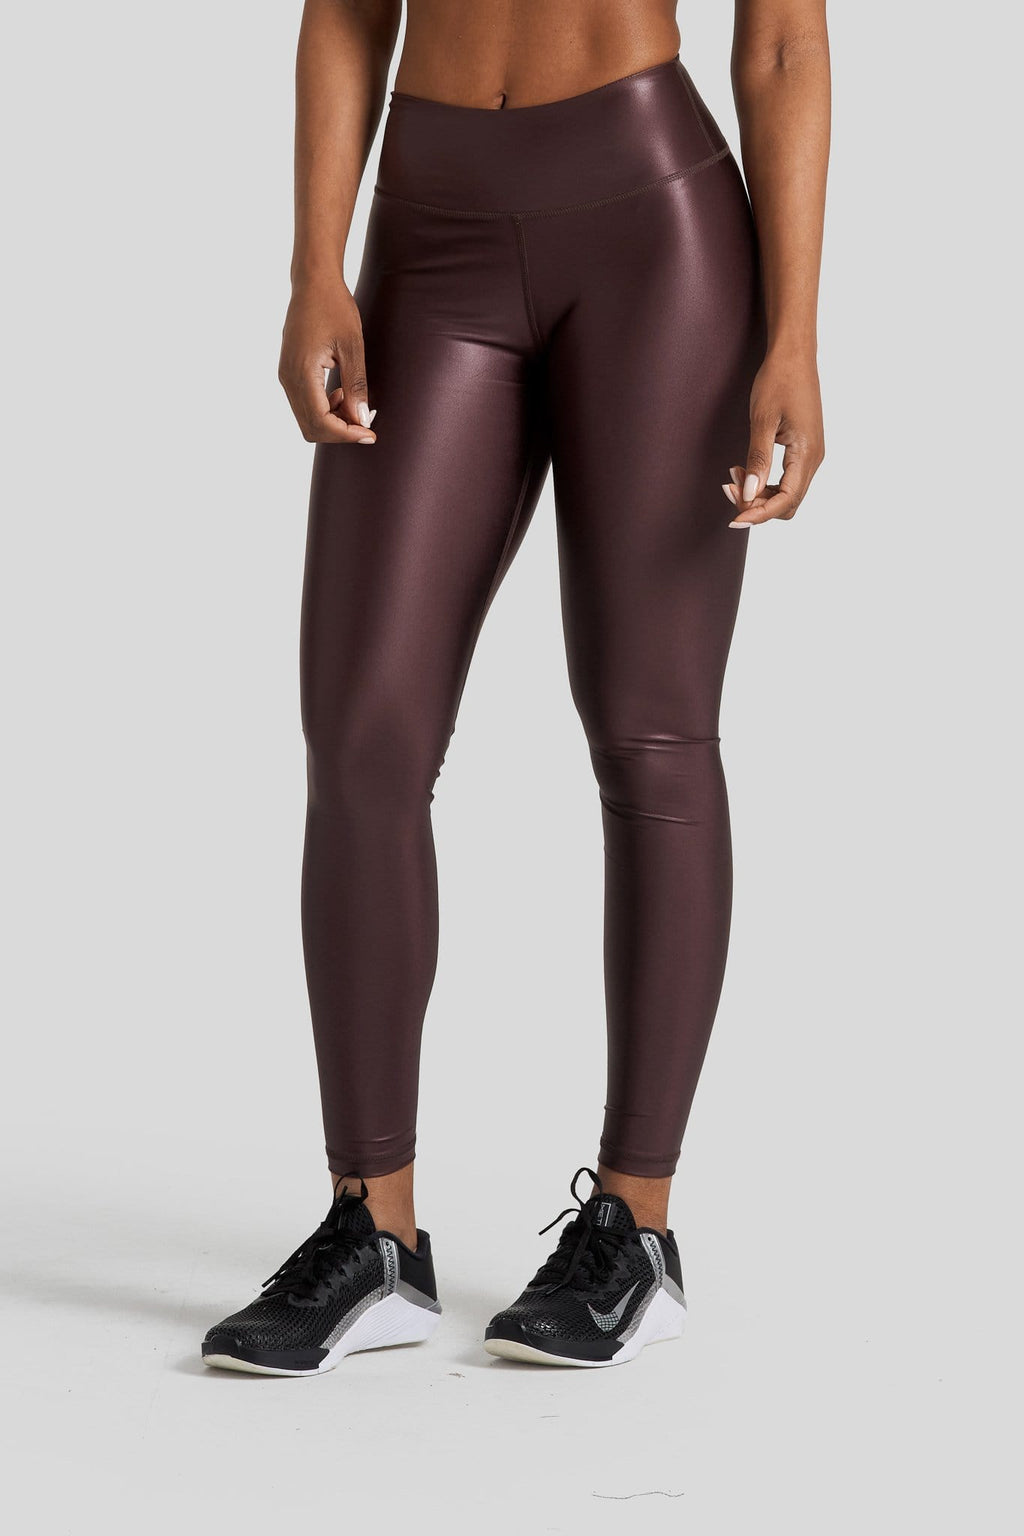 A woman's legs are shown wearing shiny brown leggings